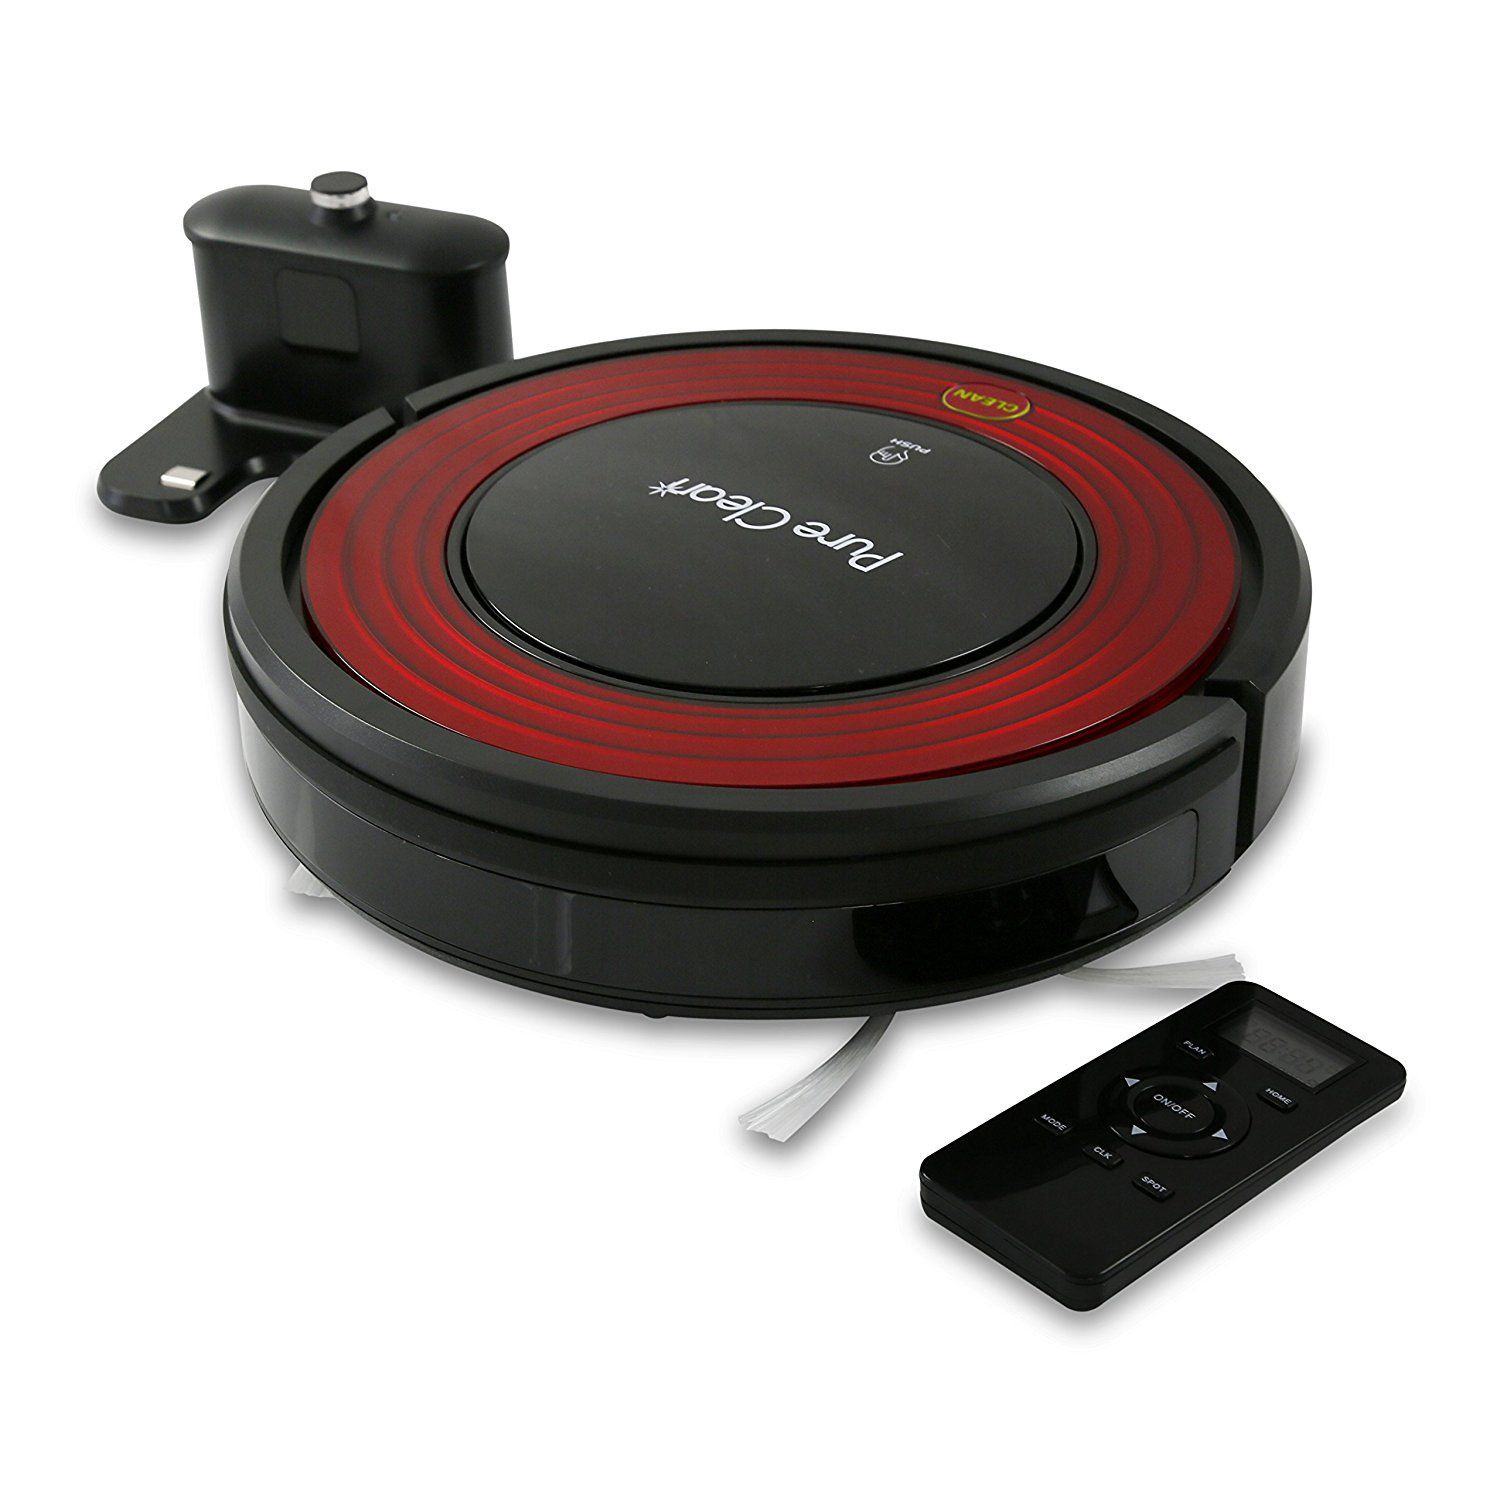 Best Vacuum for Pet Hair On Hardwood Floors and Carpet Of if Your Home is Carpet Covered then Having the Best Robotic Vacuum Intended for if Your Home is Carpet Covered then Having the Best Robotic Vacuum for Carpet is A Sure Way to Save Time and Effort Vacuuming